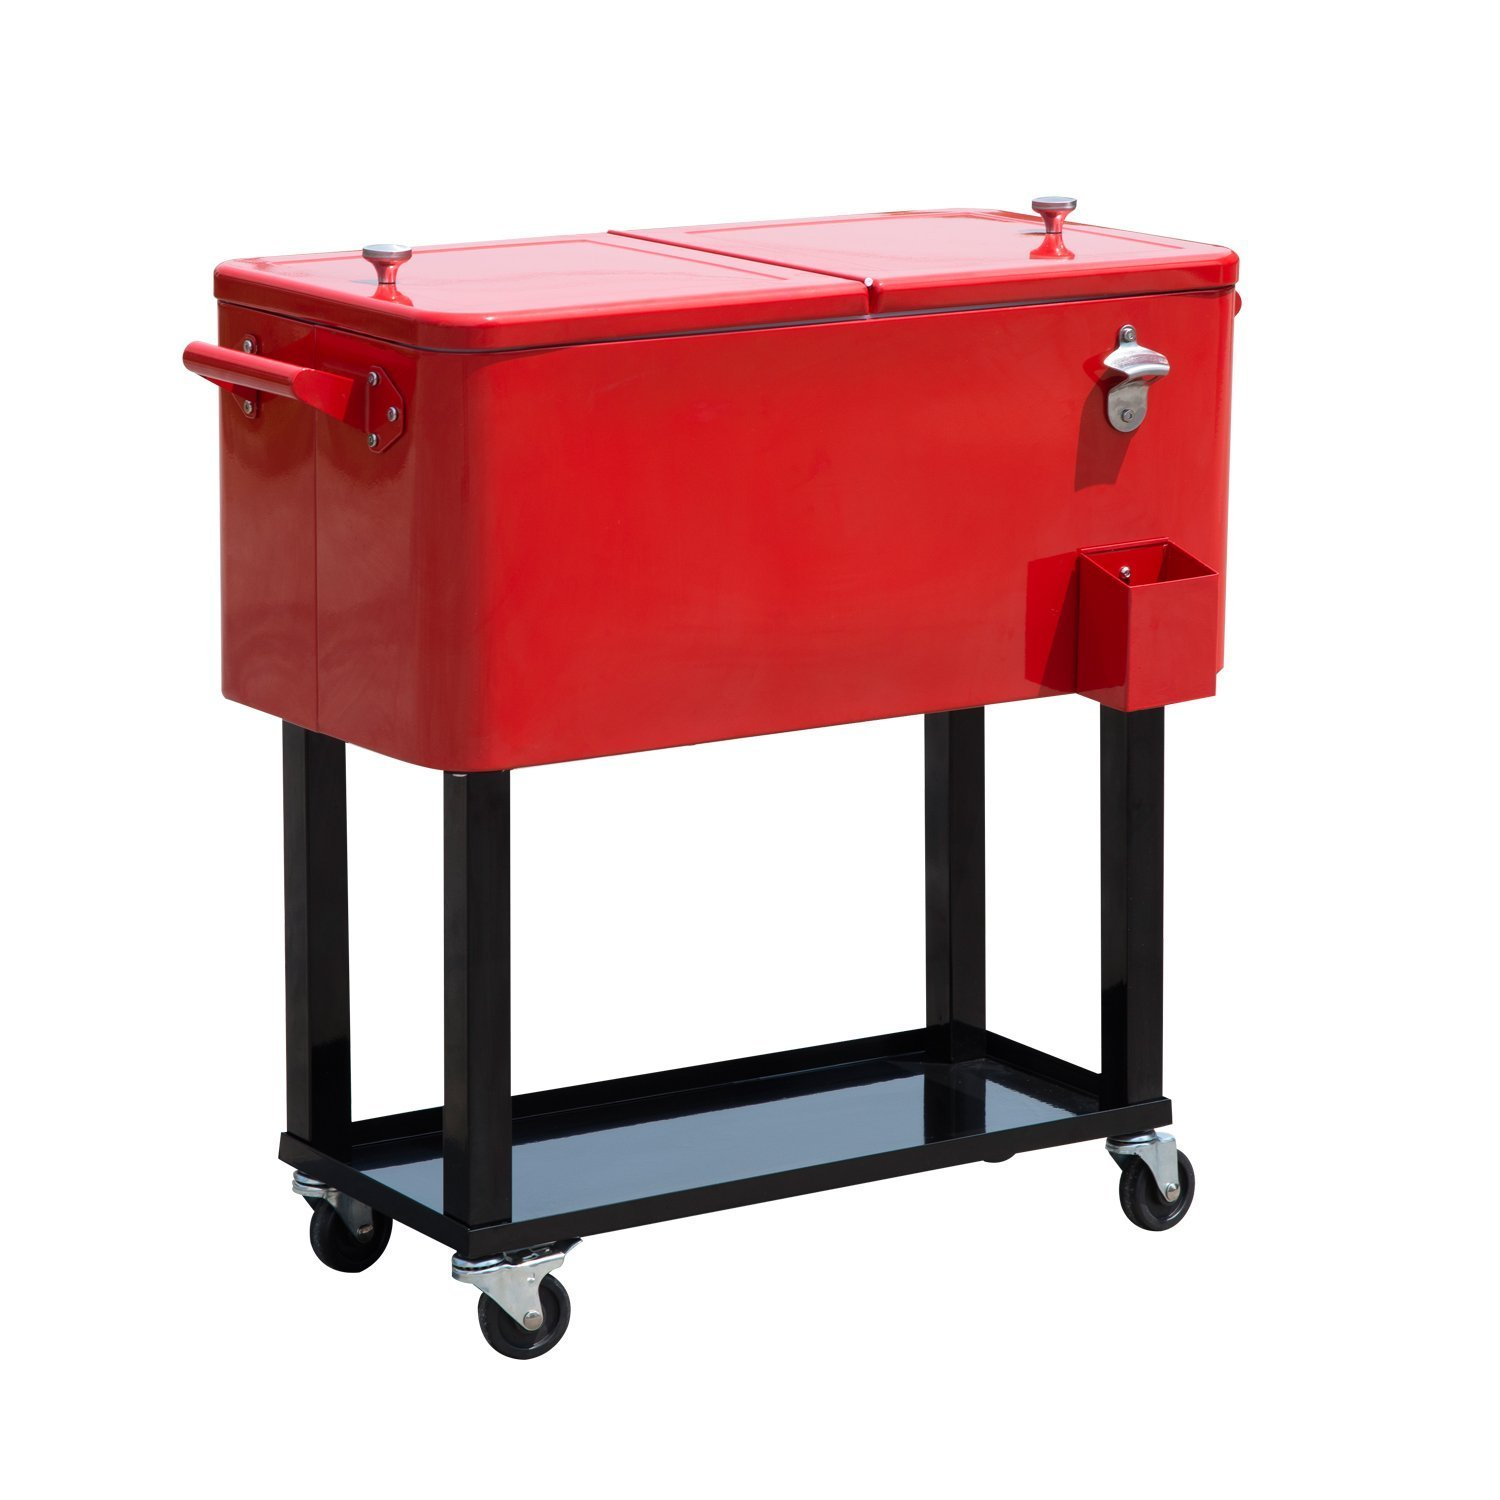 Outsunny 80 QT Rolling Ice Chest Portable Patio Party Drink Cooler Cart - Red